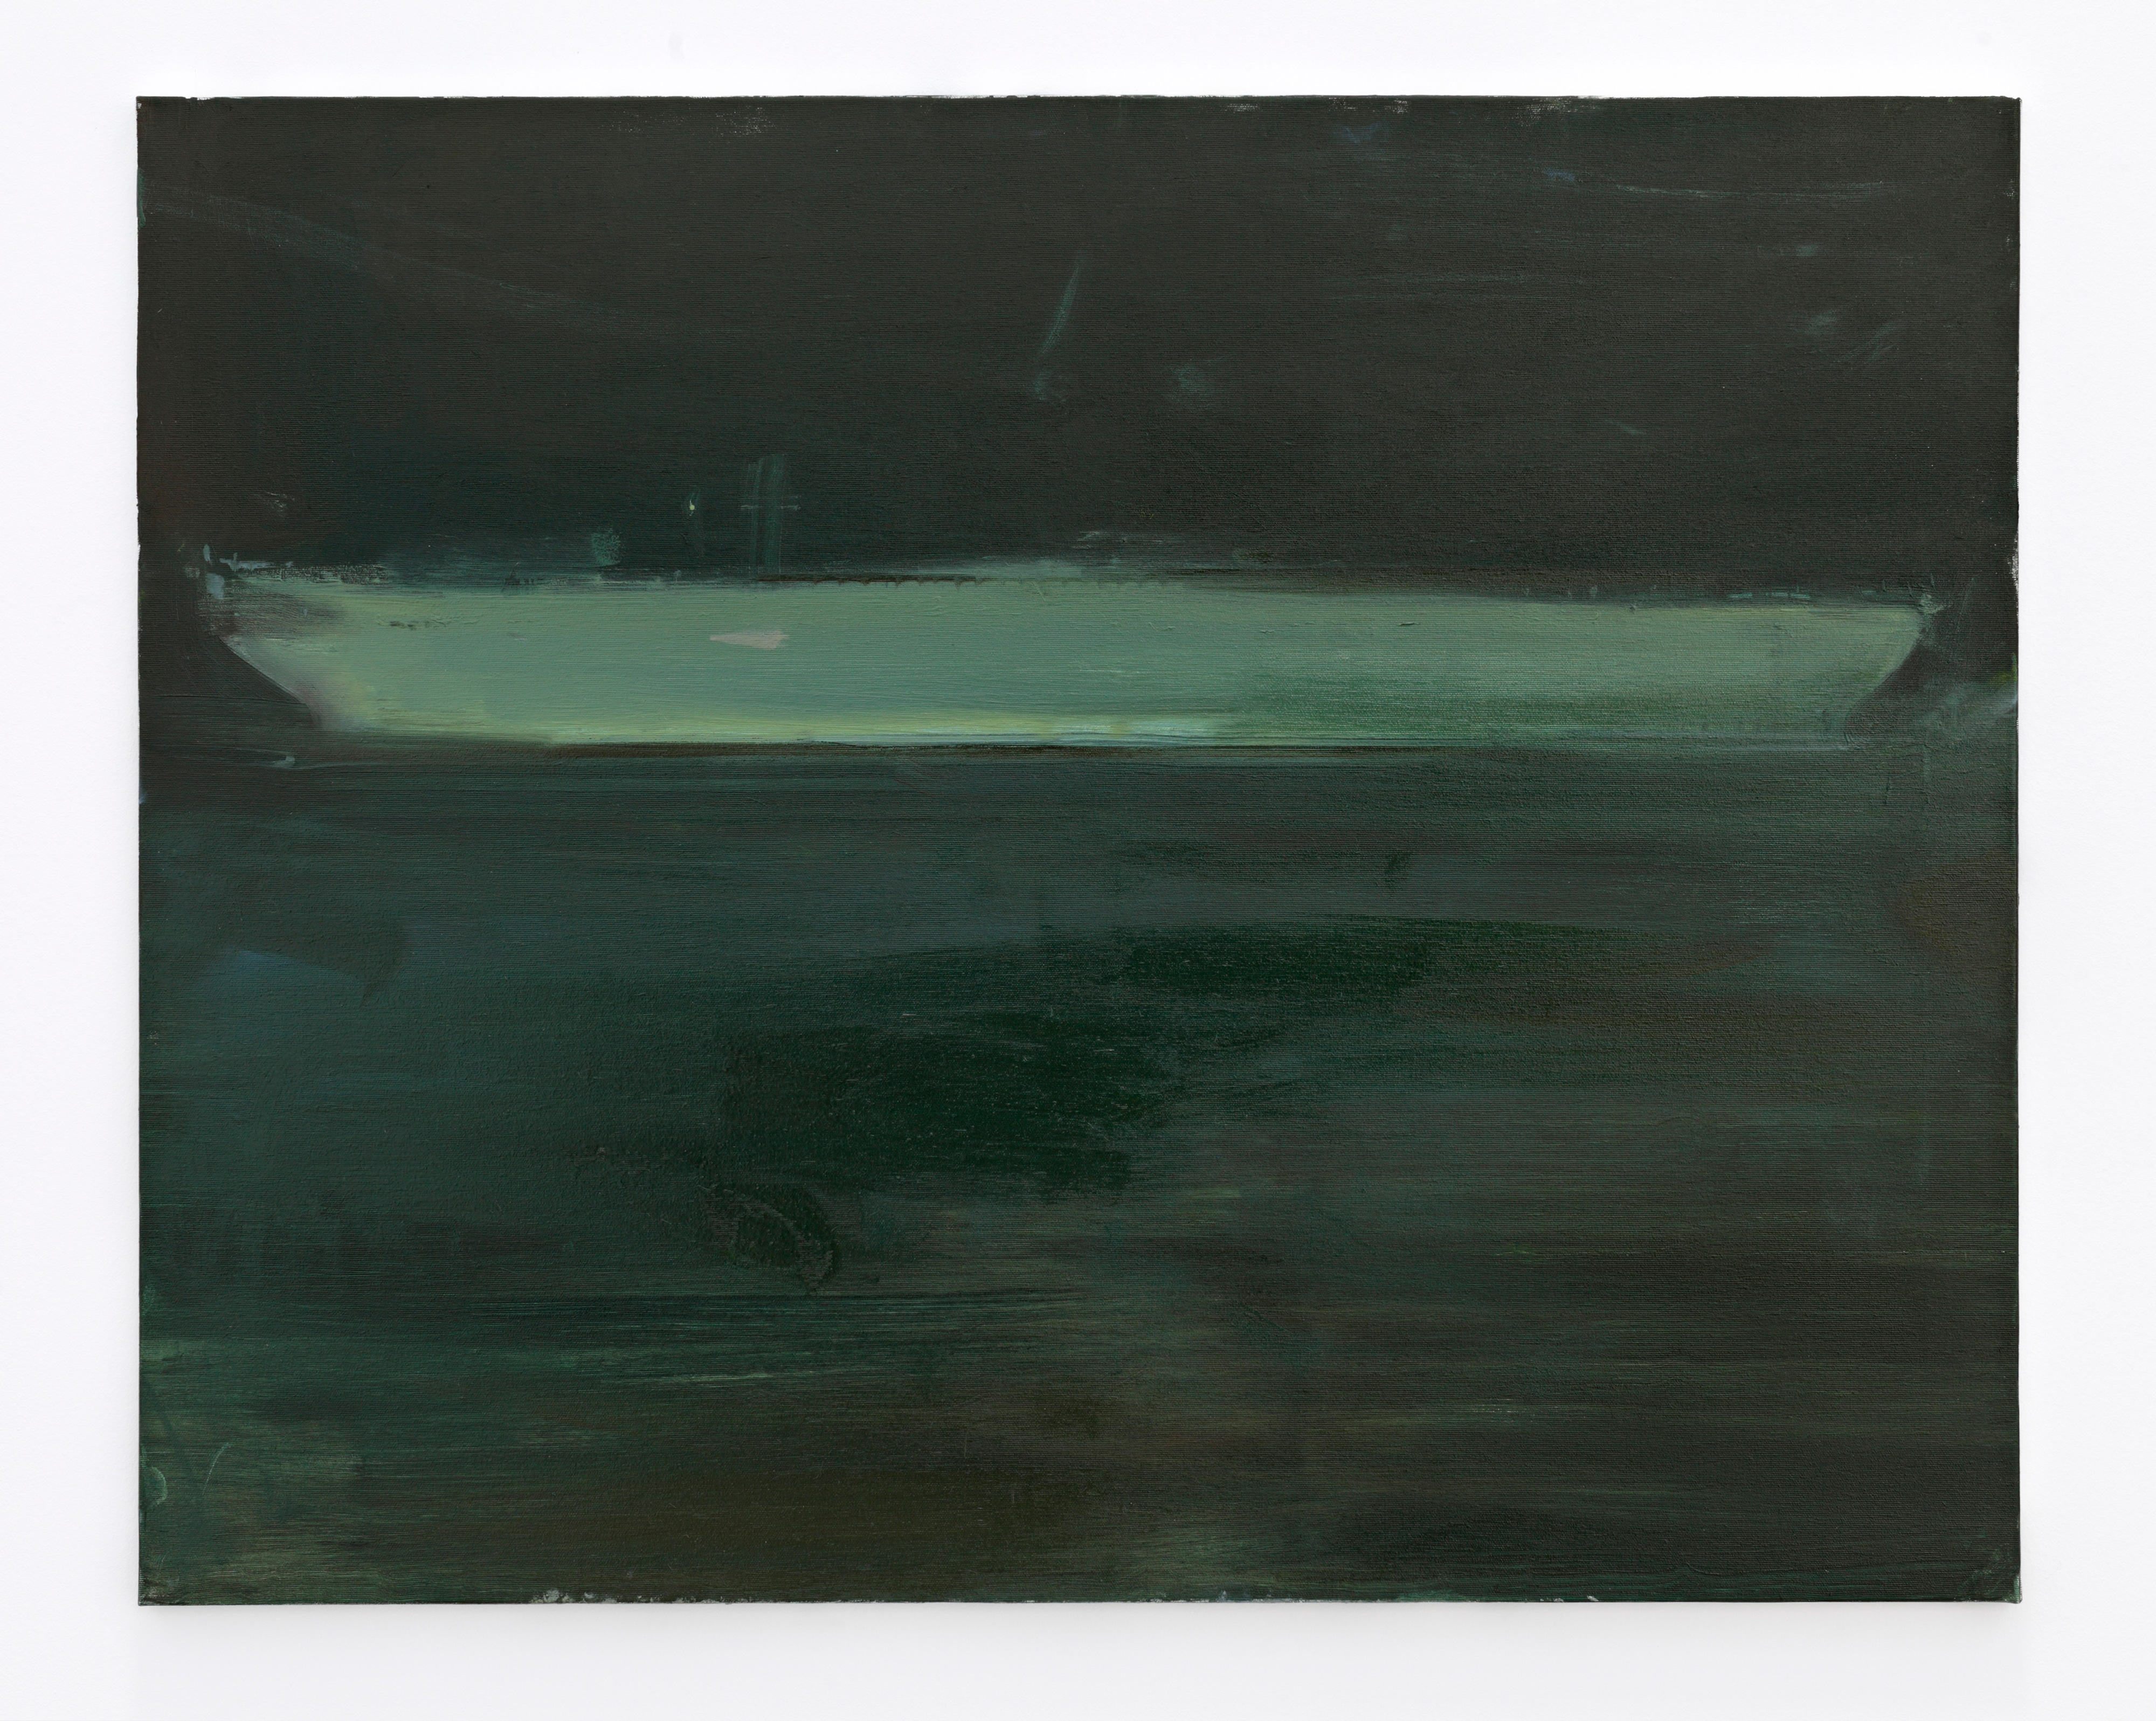 Galerie Barbara Thumm \ Simon Cantemir Hausì – What Do You See? \ Untitled (boat) (2012)